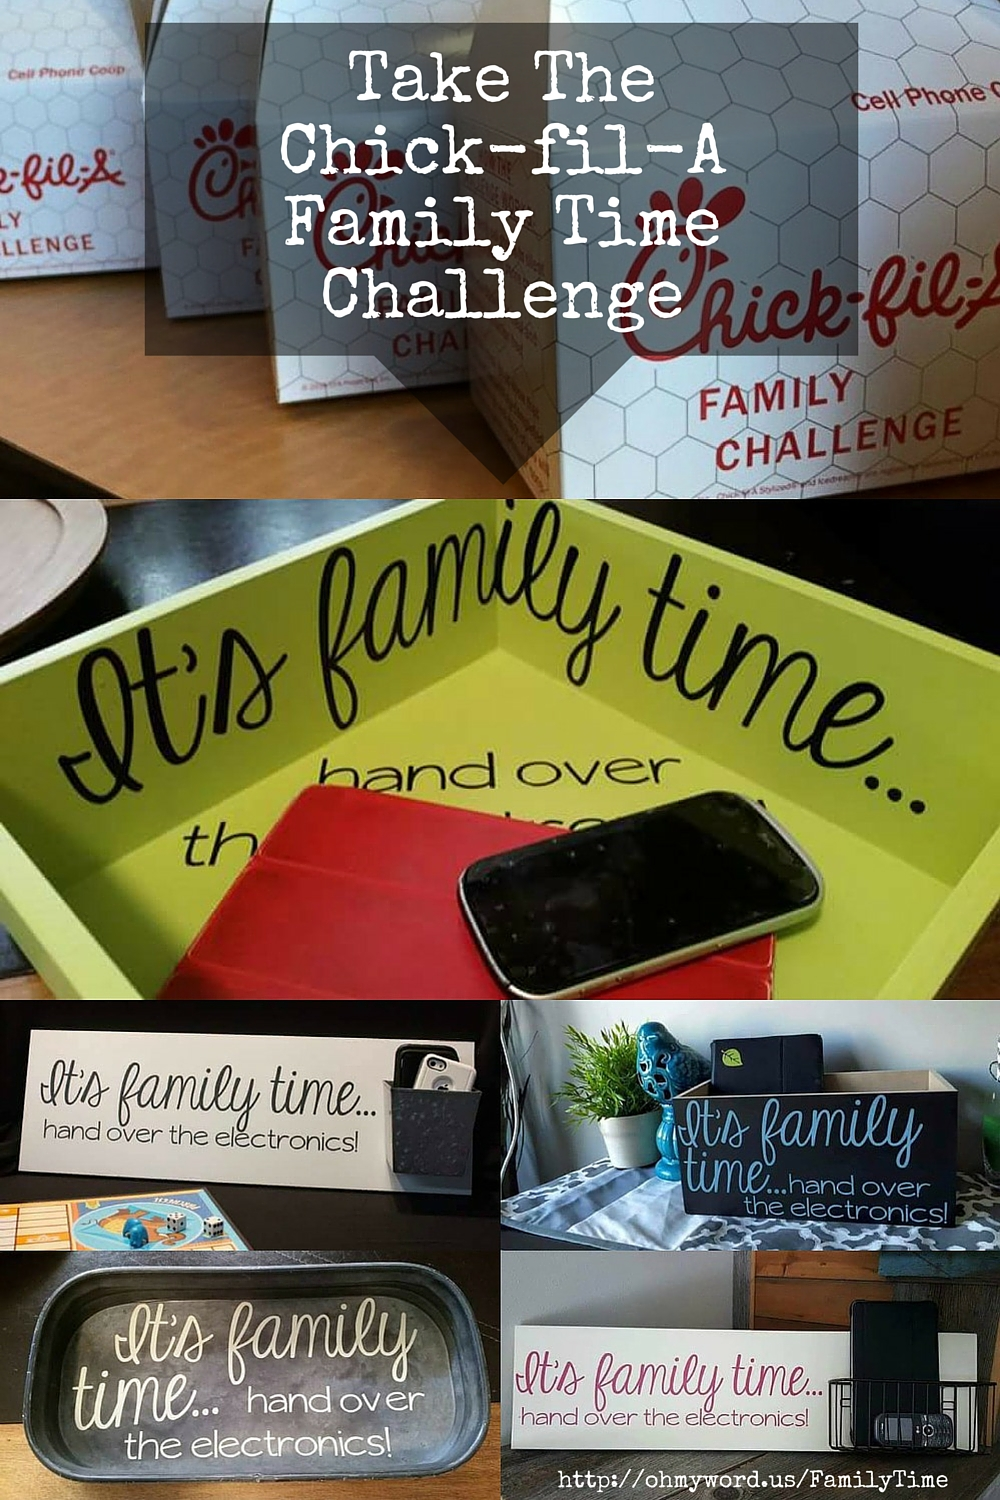 Chick-fil-A Family Time Challenge It's Family Time